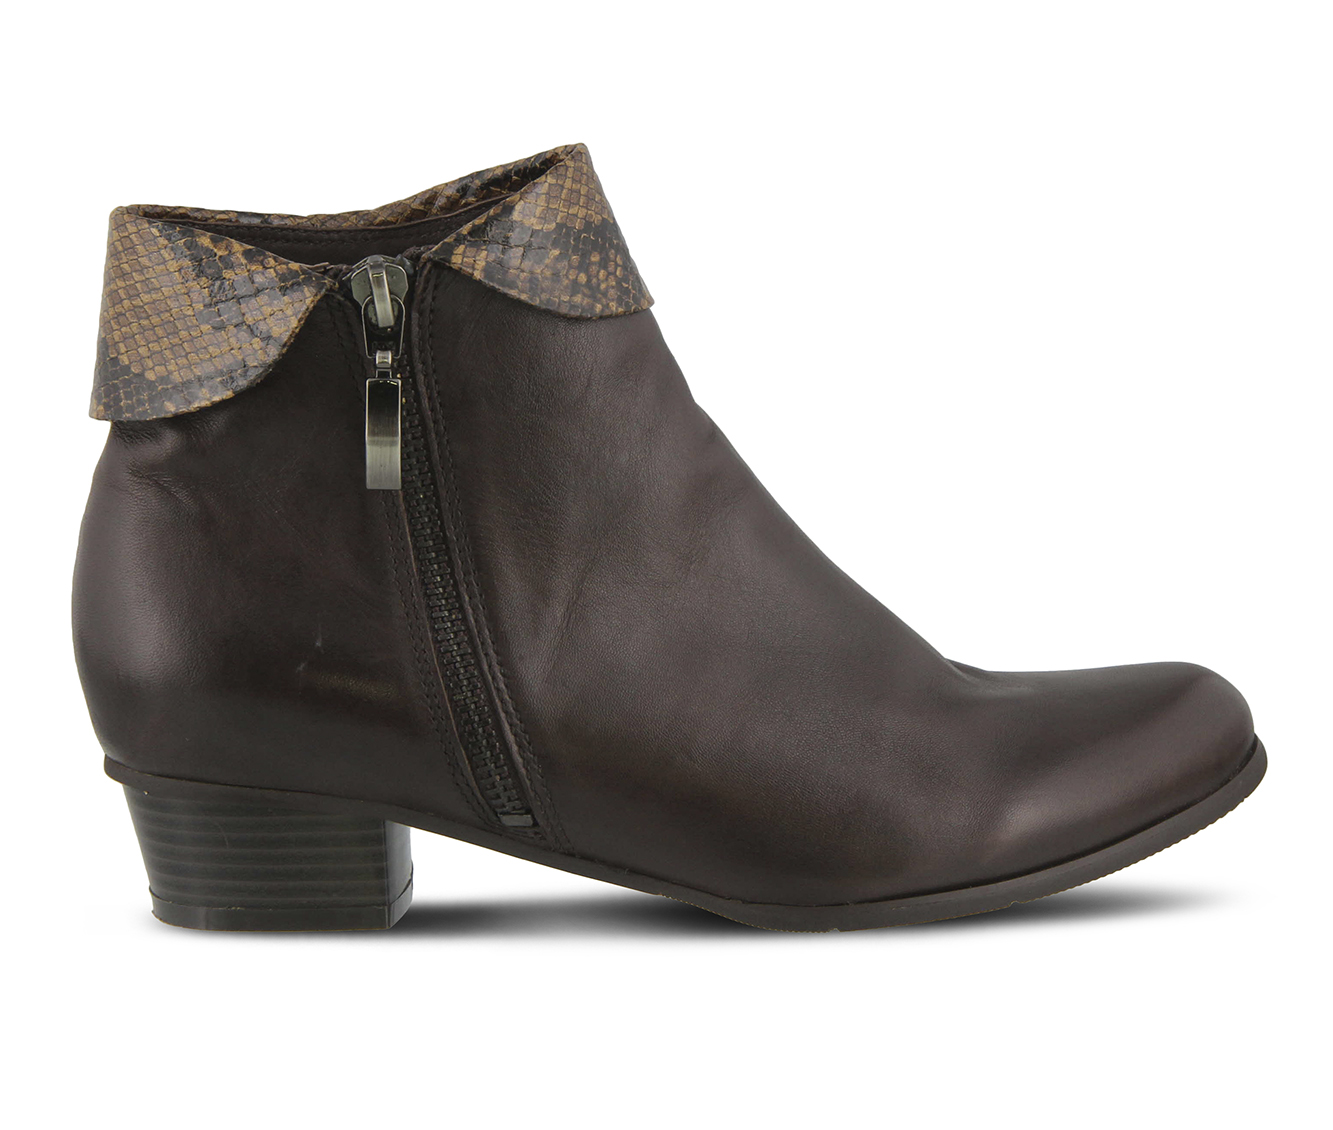 L'Artiste Stockholm Women's Boots (Brown Leather)